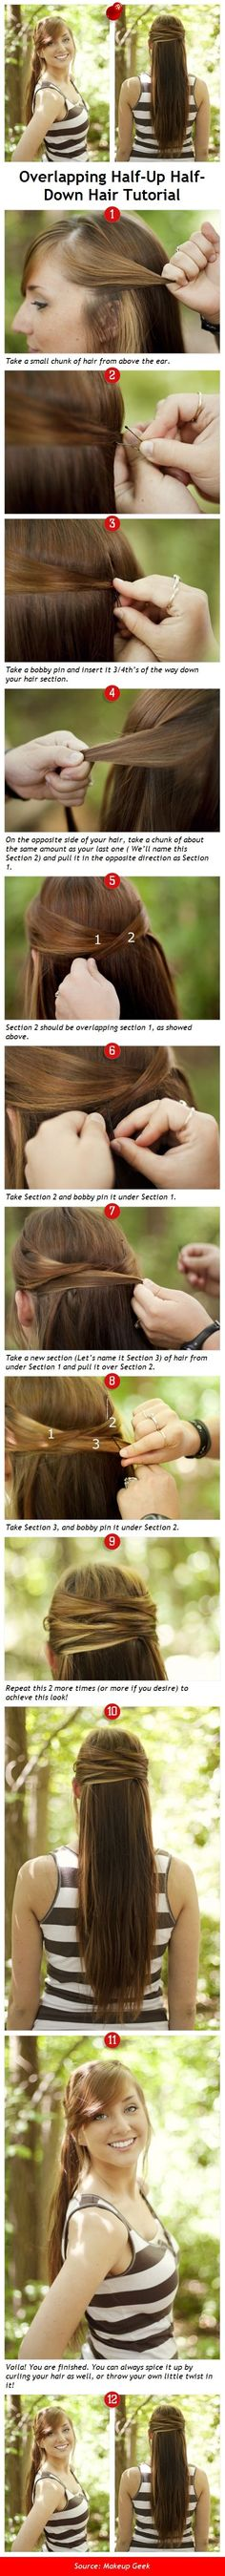 When you can make up your mind on whether you should put your hair up or down, you may go for the half-up half-down hairstyles. This kind of hairstyles are quite feminine and pretty. They are suitable for every occasion you are going for. Whatever your hair length is, even the simplest half up half[Read the Rest]